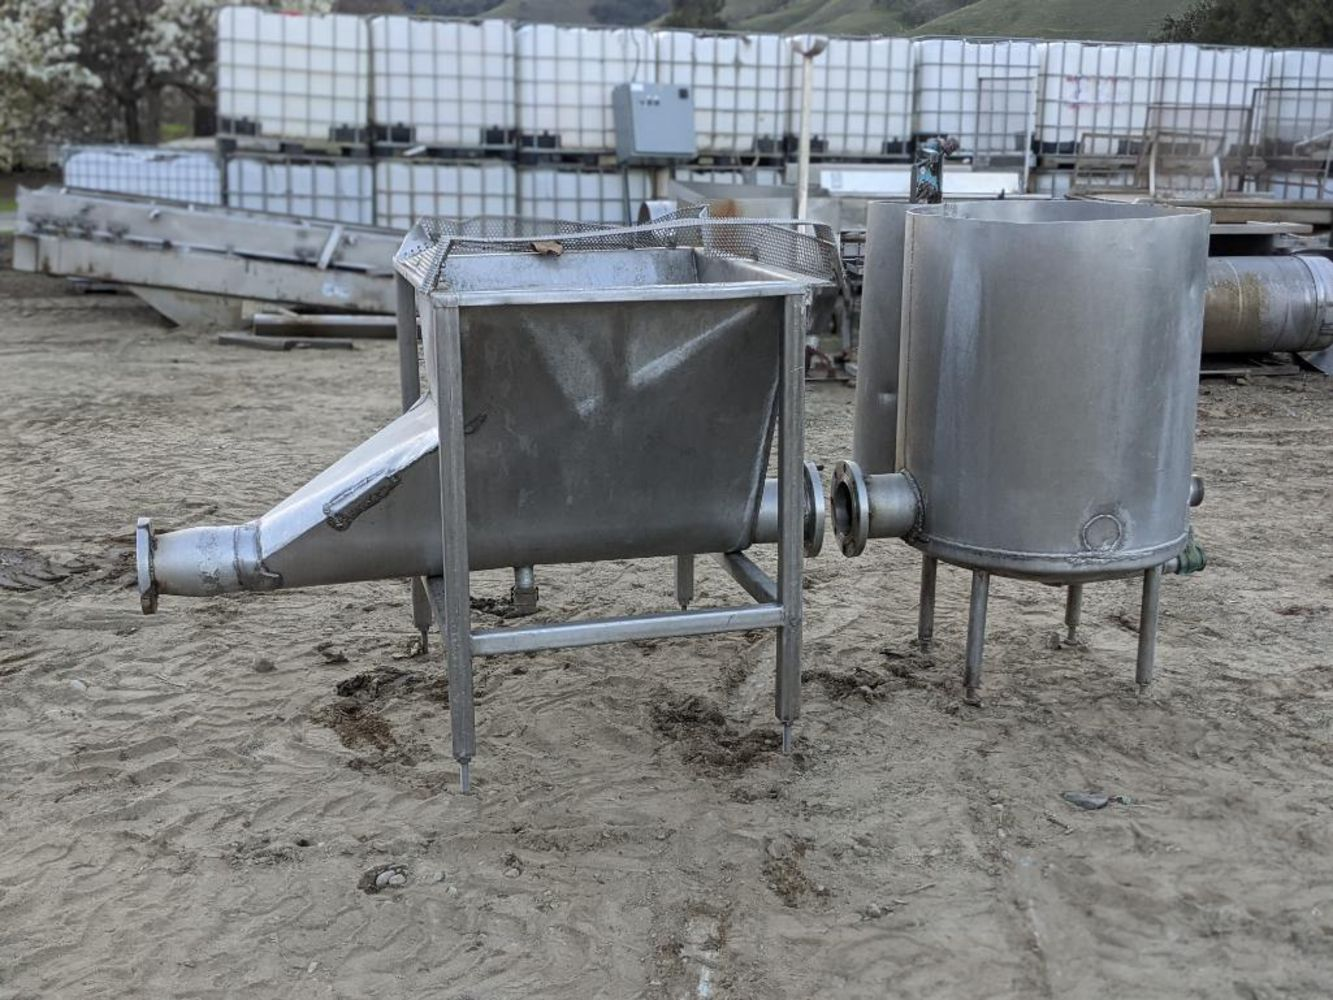 (3) location online only auction of cannabis, CBD and hemp extraction equipment; nut and oil processing; material handling